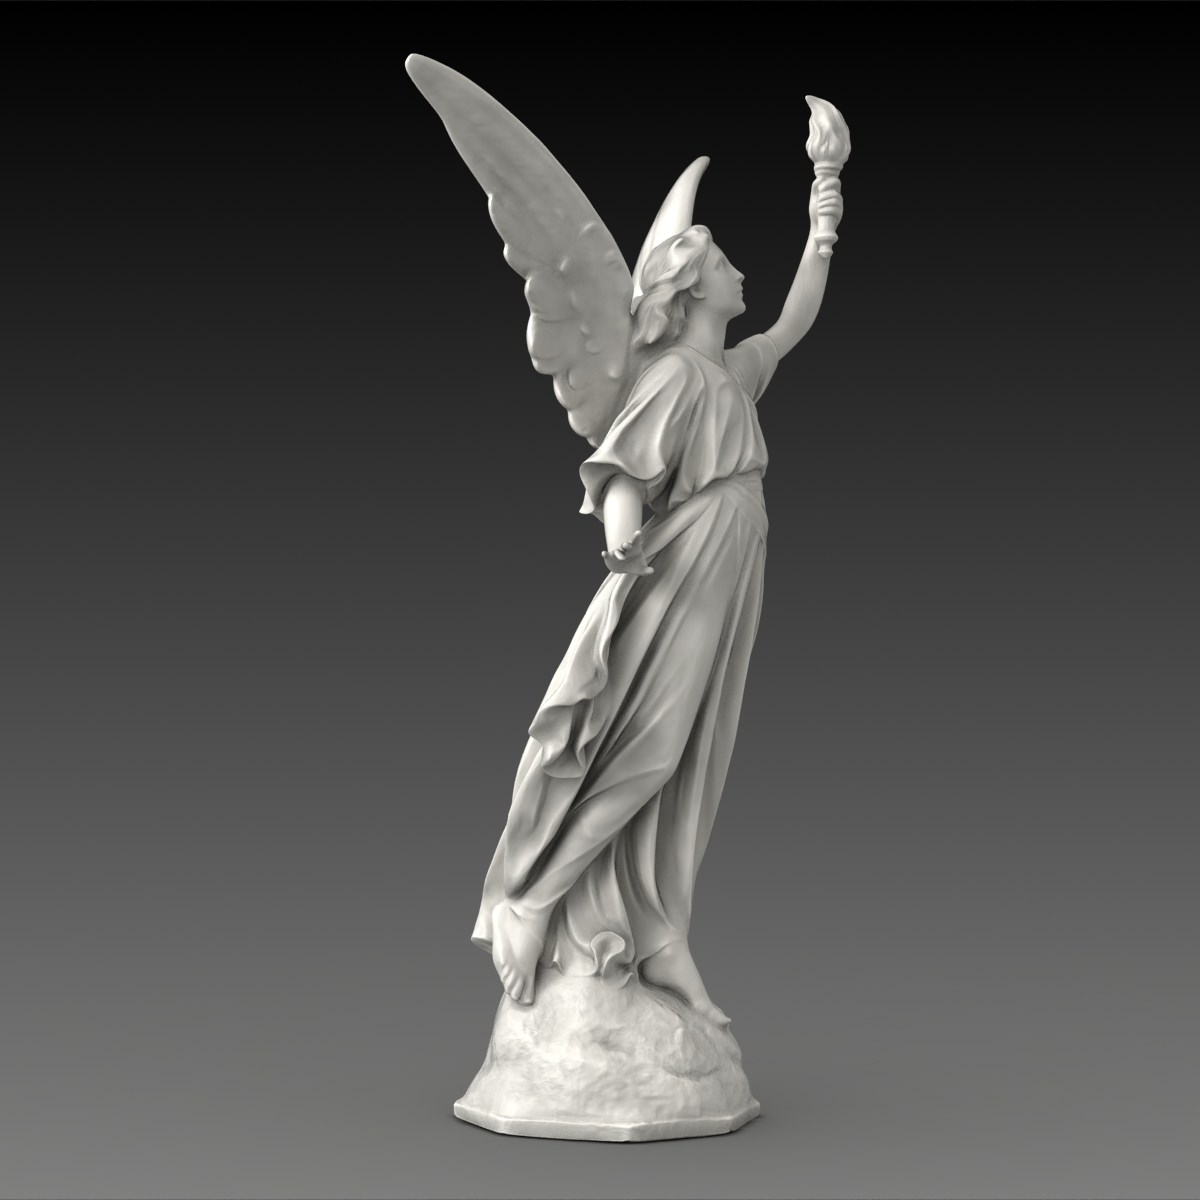 Lucy A Christian Angel Statue Free 3d Model Max Obj Fbx